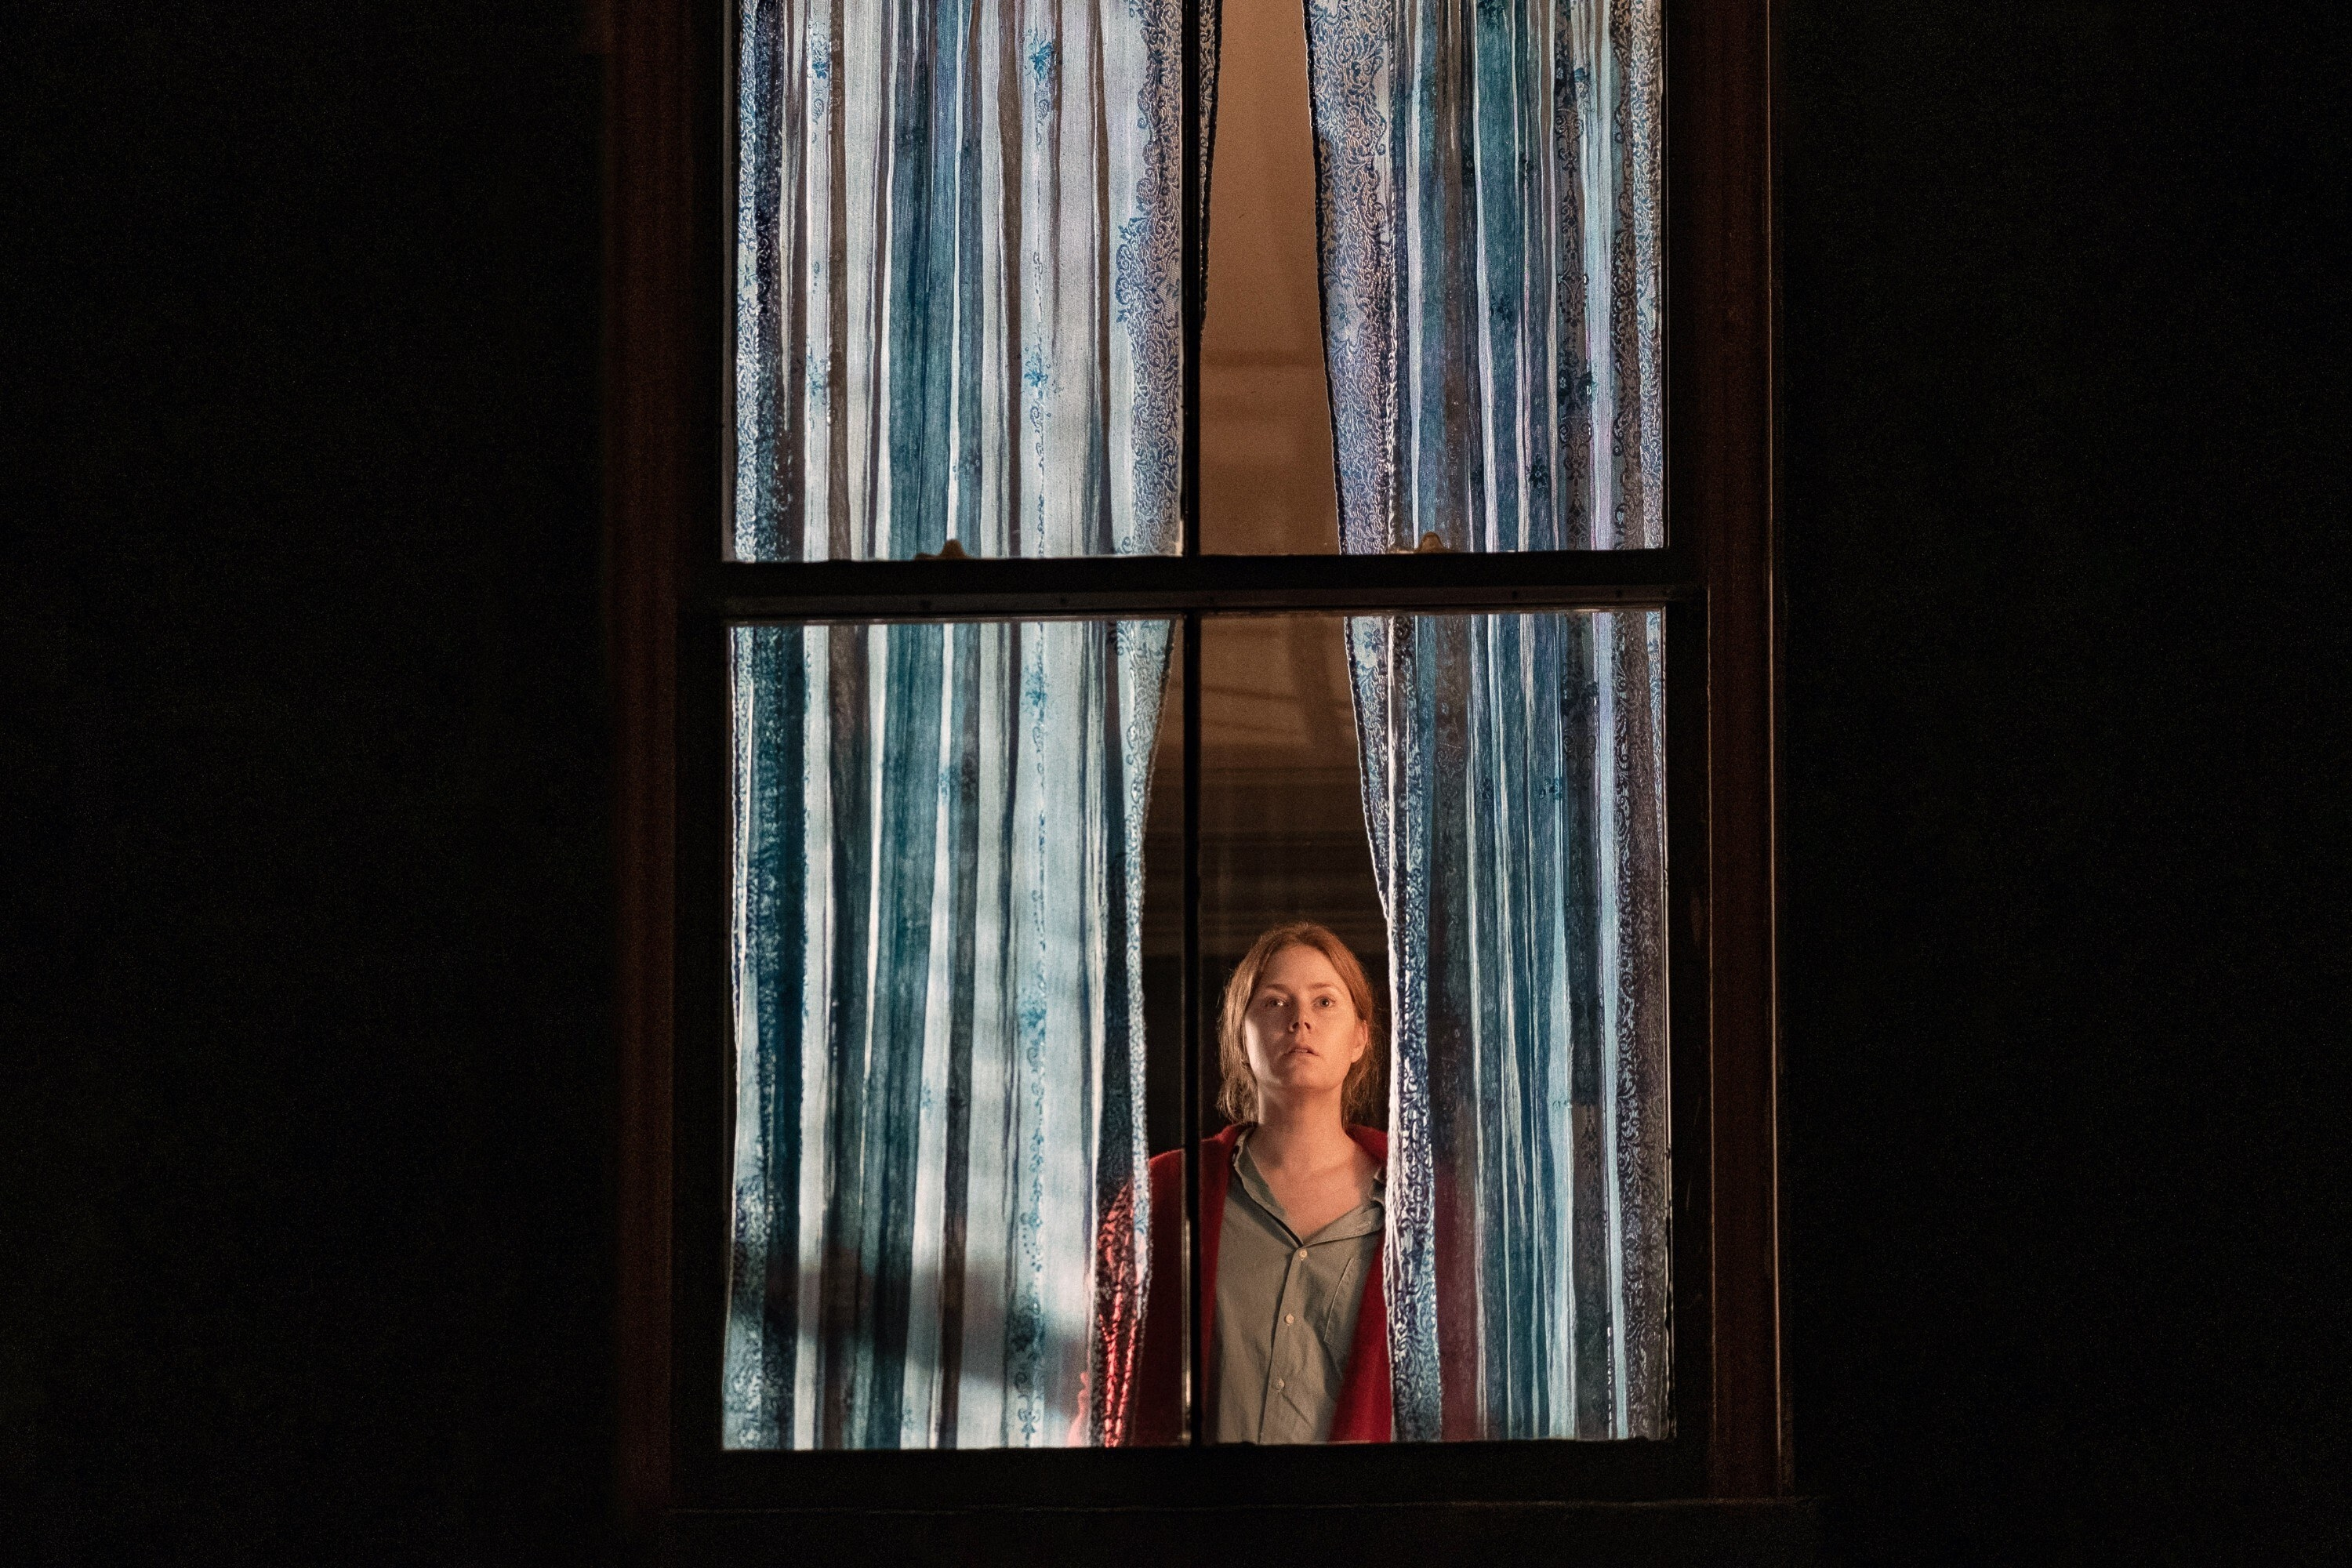 Anna in her window, seen from outside